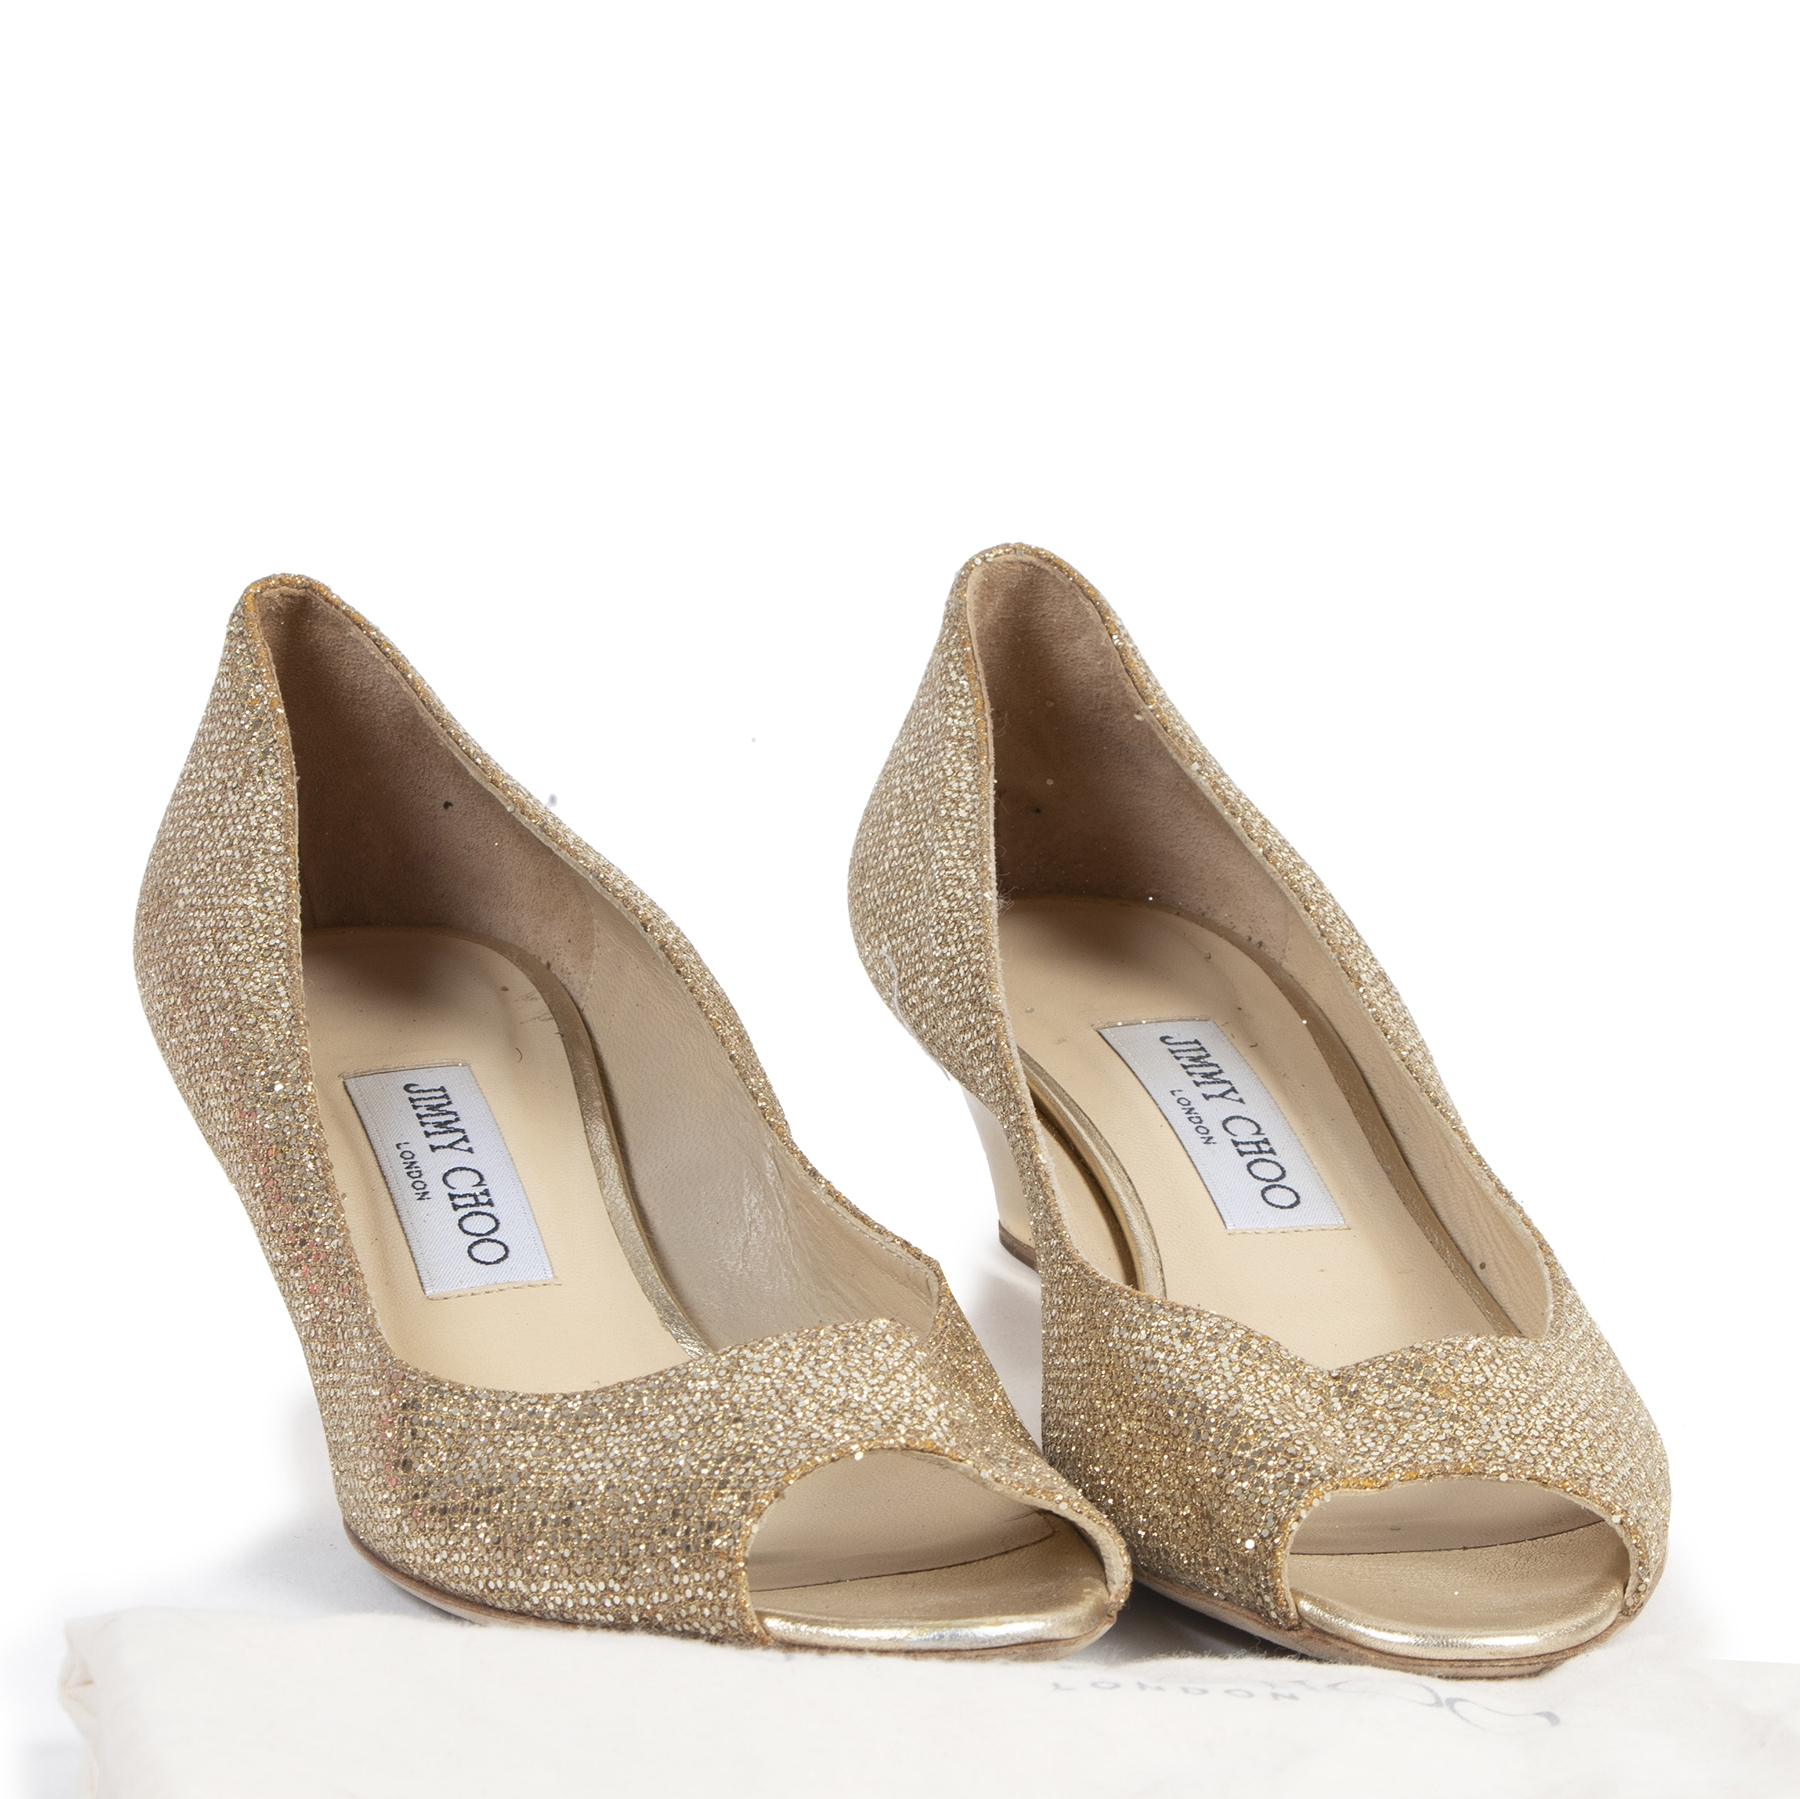 Authentic secondhand Jimmy Choo Gold Glitter Wedge Heels - Size 40 designer shoes fashion luxury vintage webshop safe secure online shopping